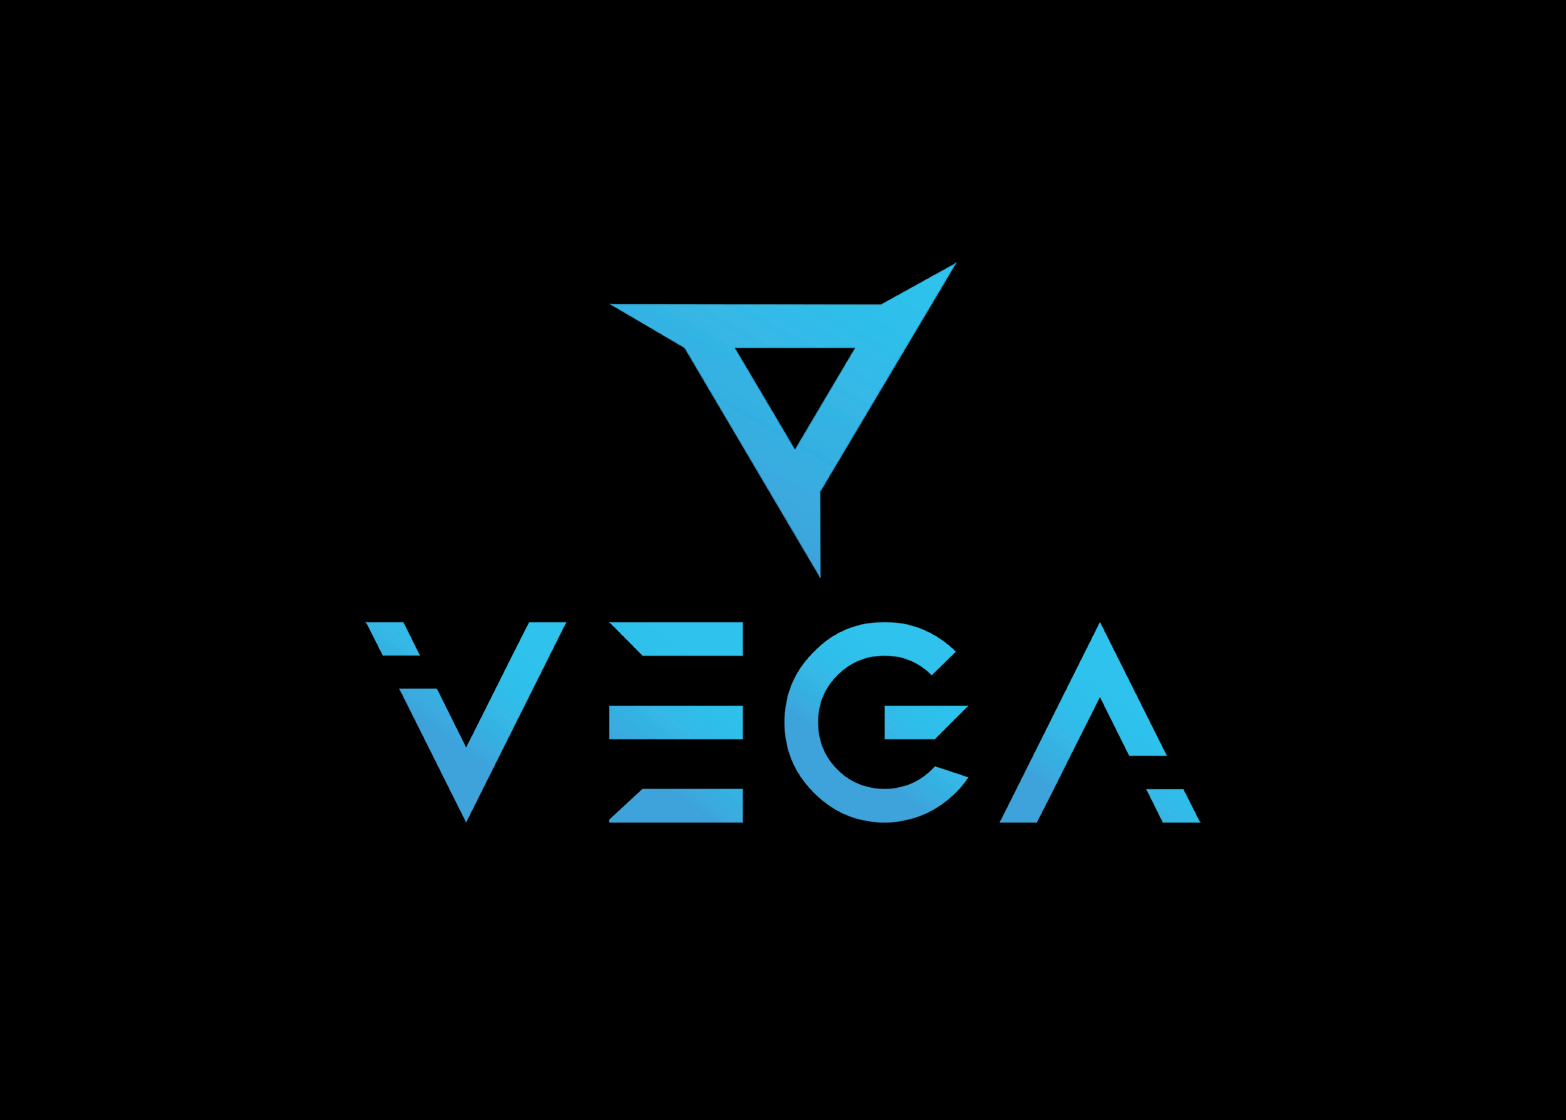 VEGA and LOGO for twitch.png